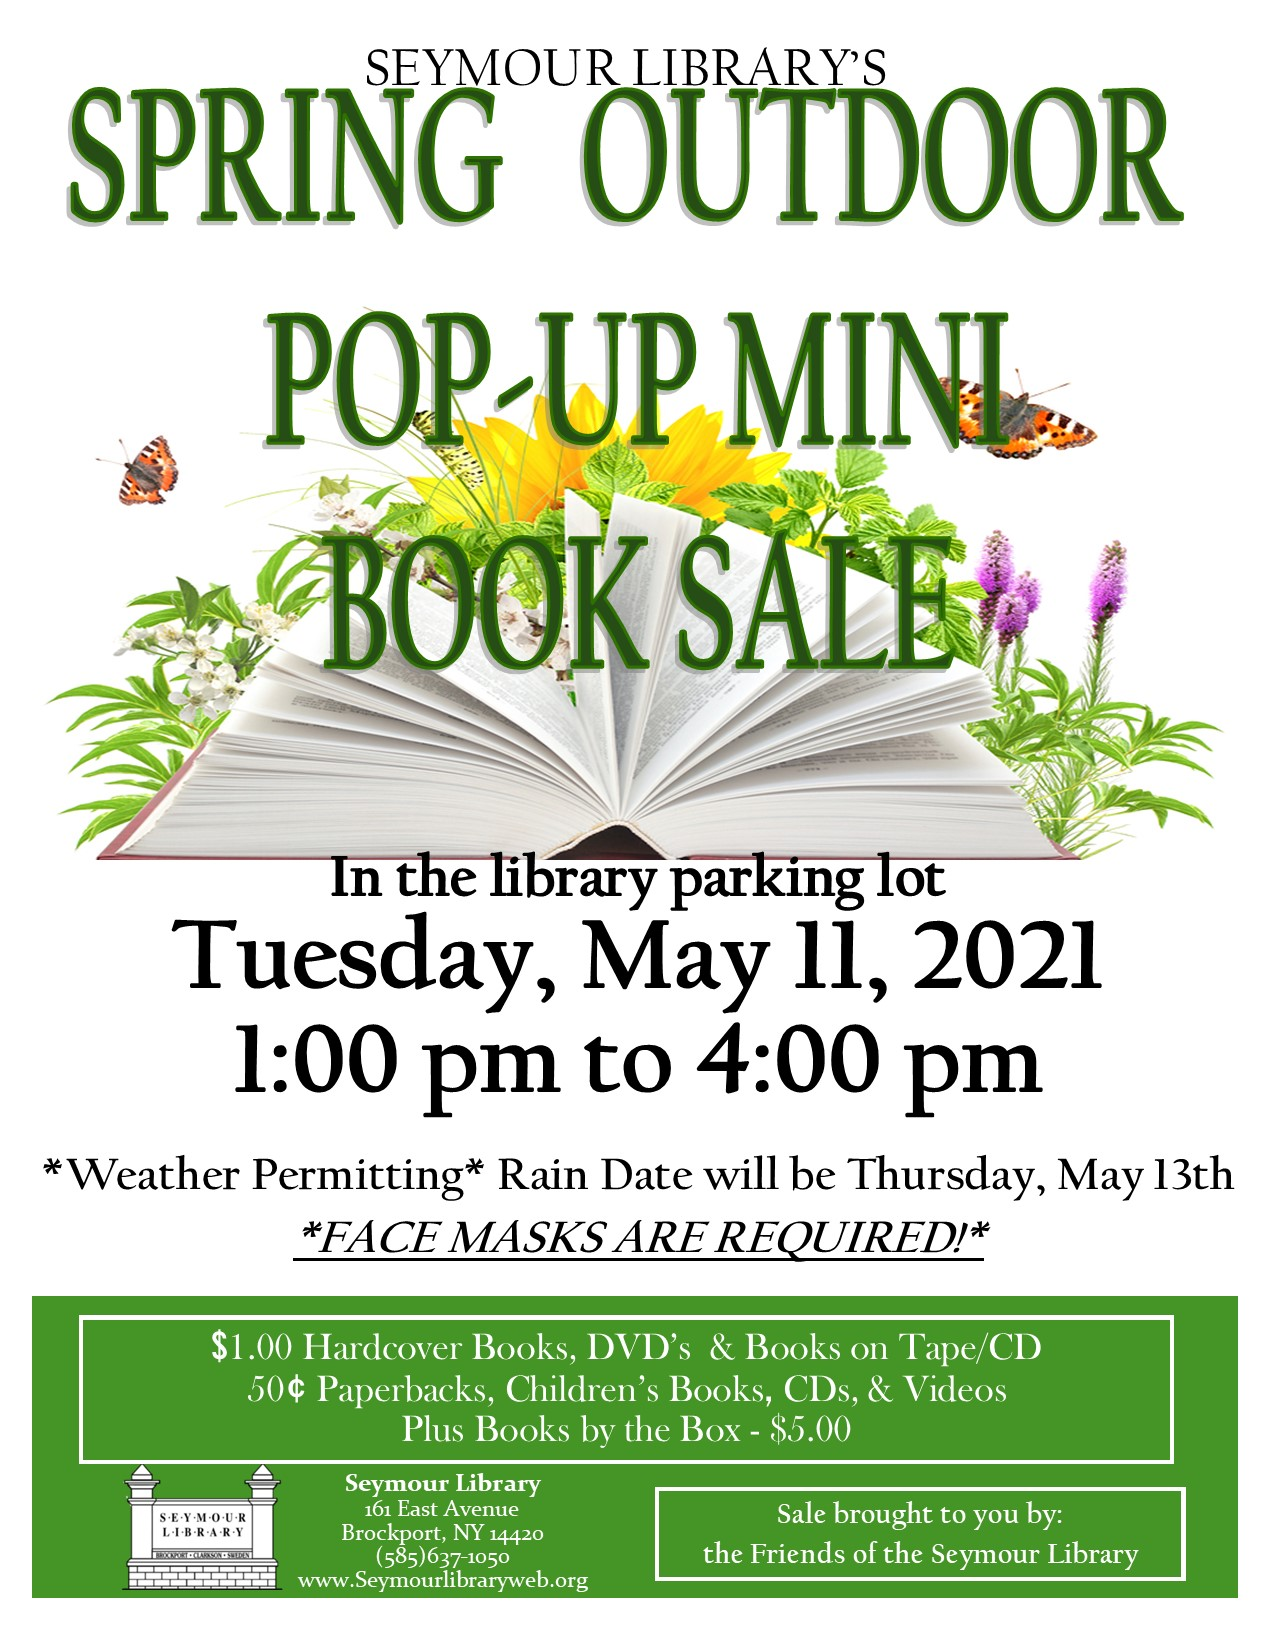 SEYMOUR LIBRARY POP-UP BOOK SALE!